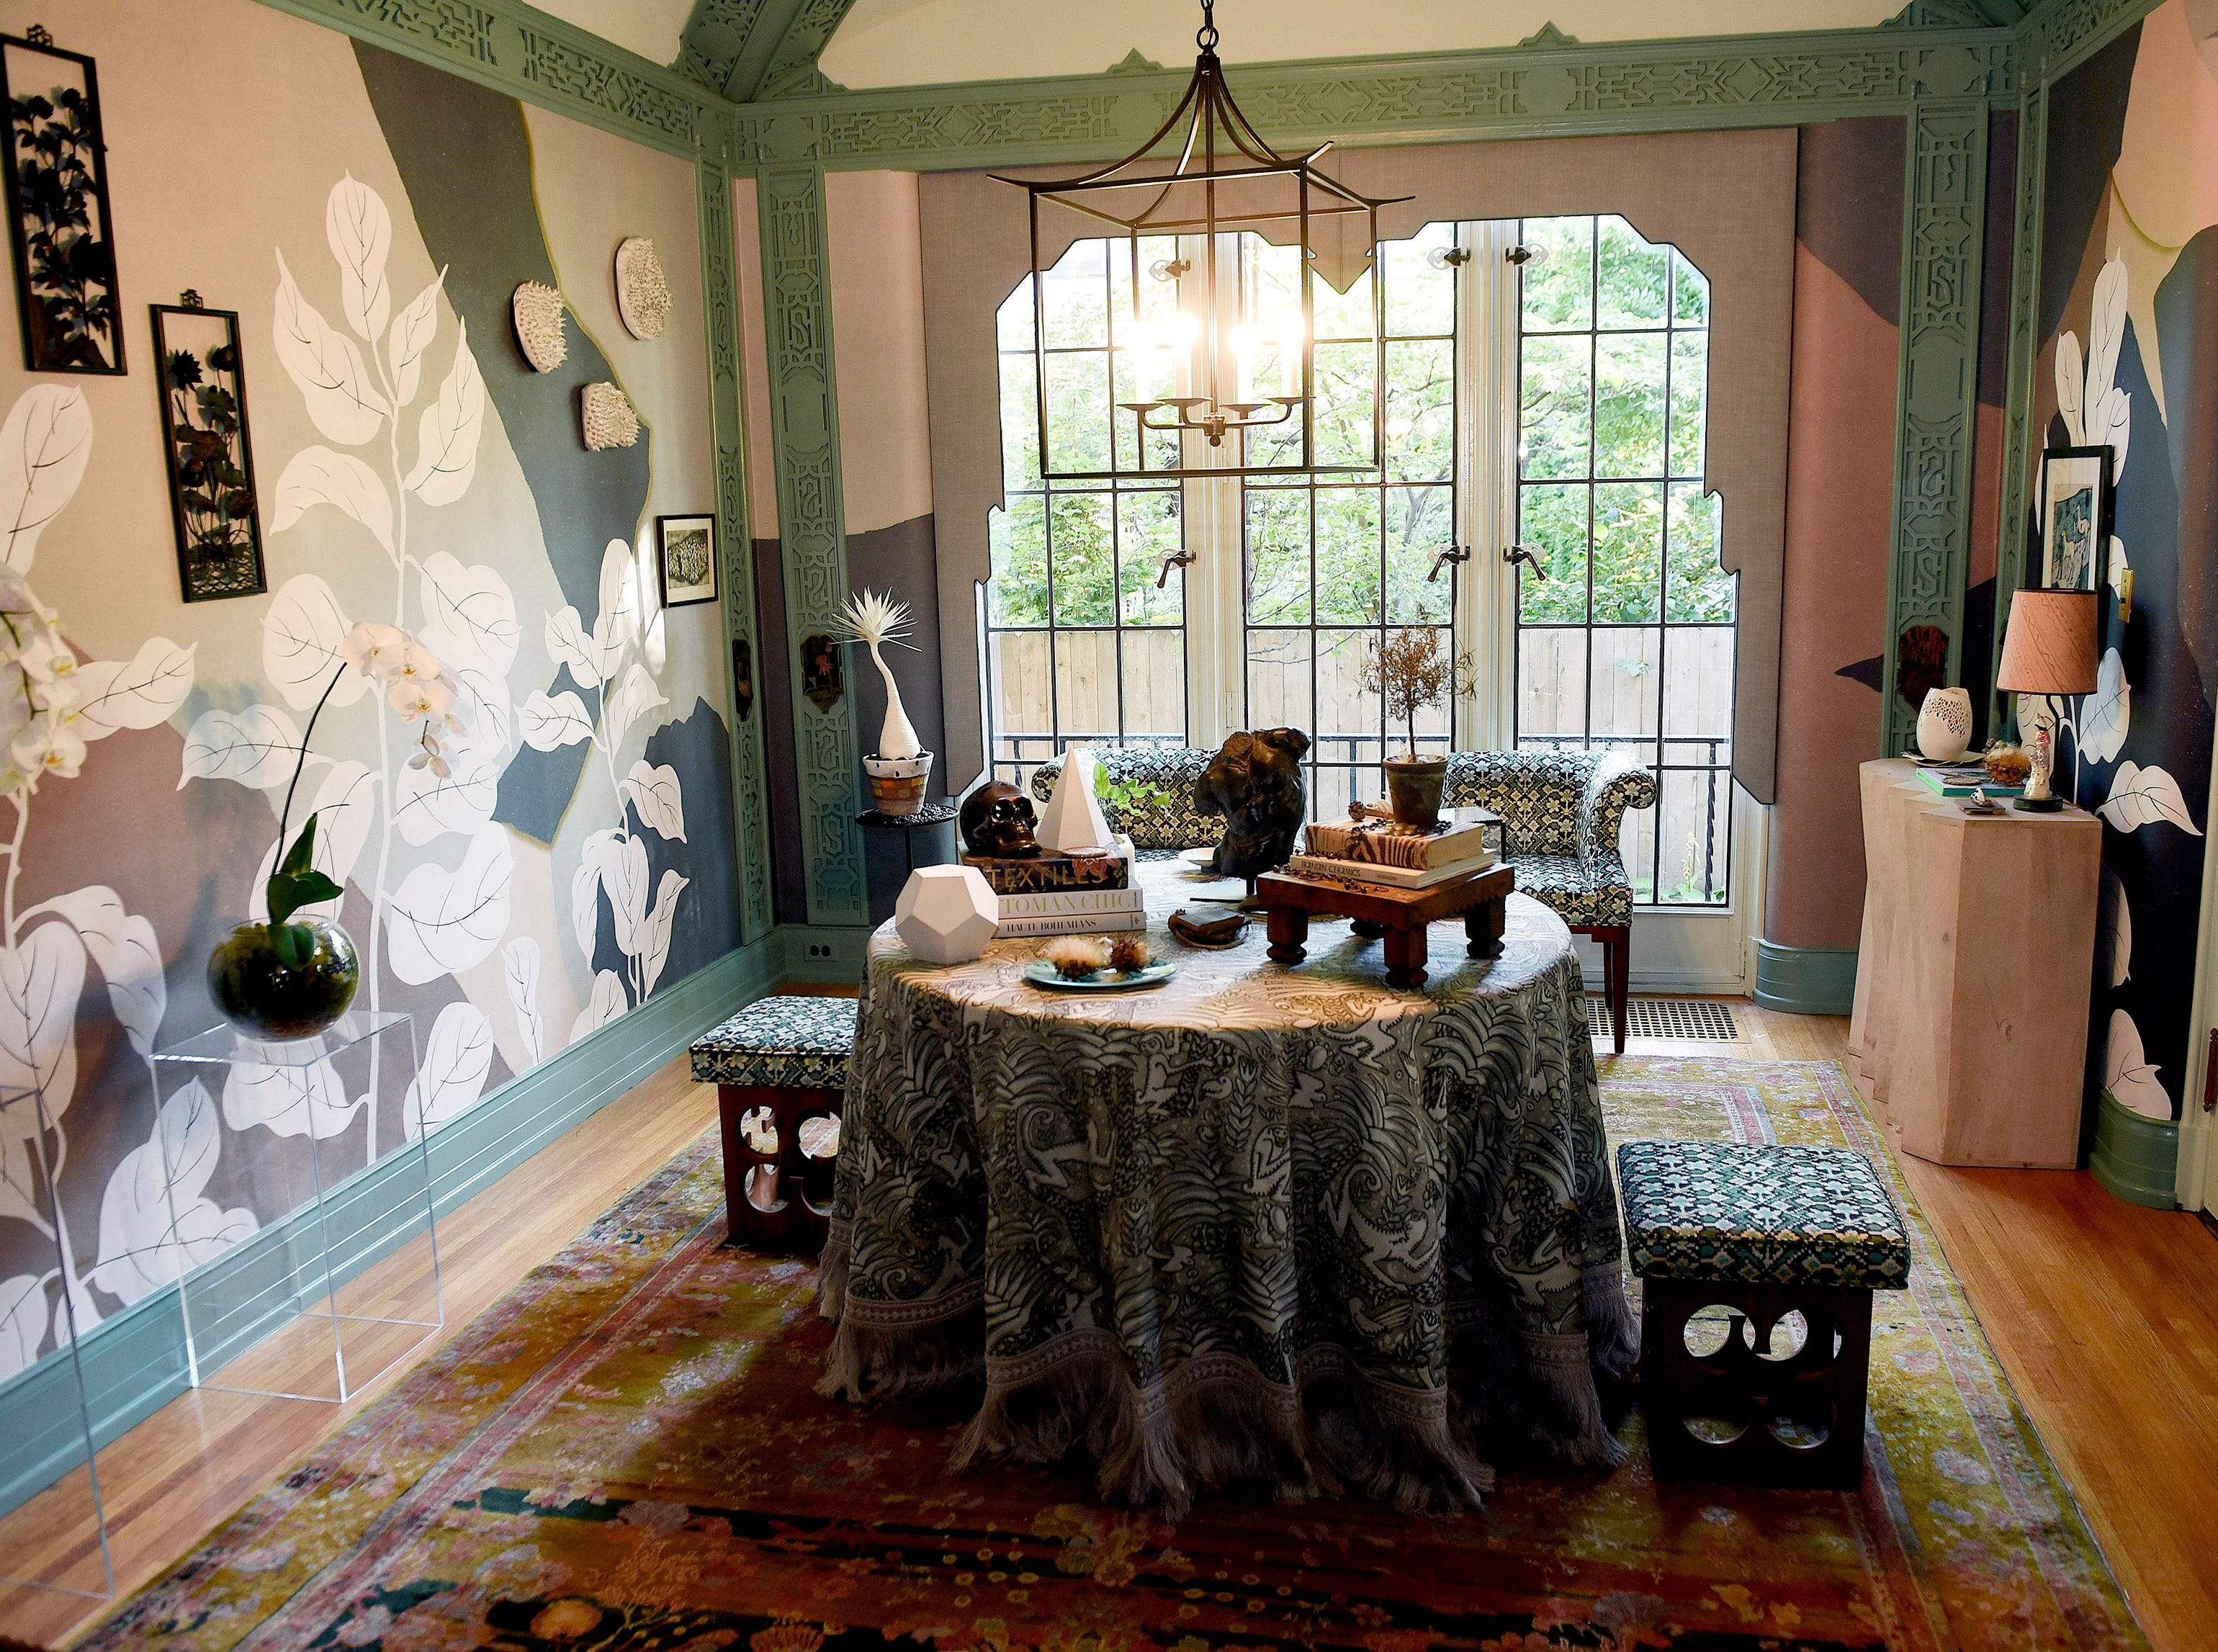 The breakfast room inside the Fisher mansion.